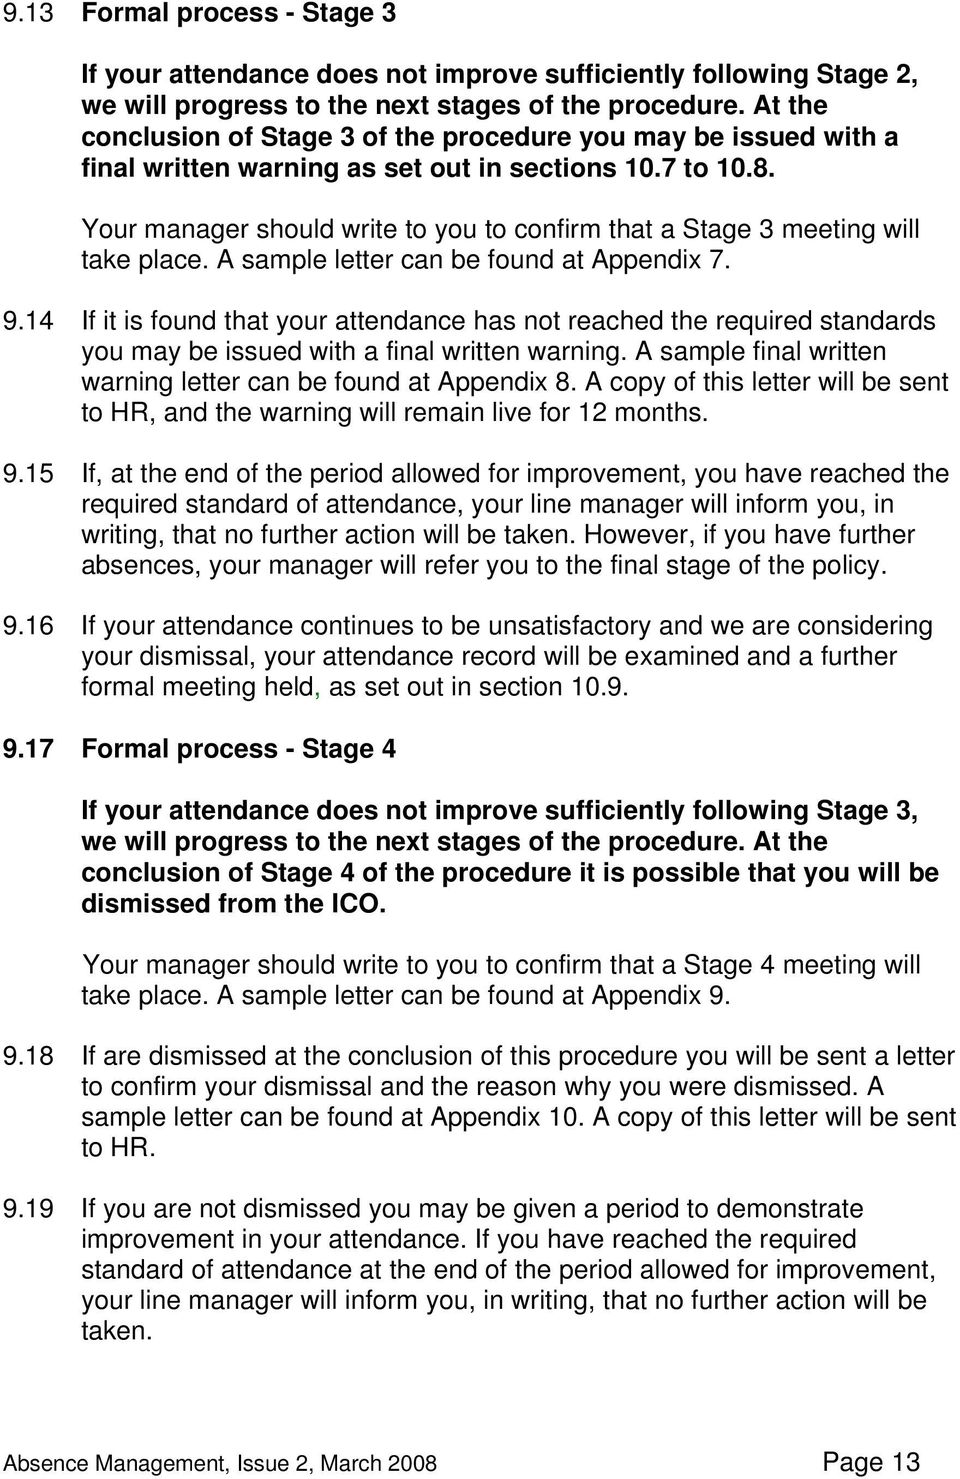 Your manager should write to you to confirm that a Stage 3 meeting will take place. A sample letter can be found at Appendix 7. 9.